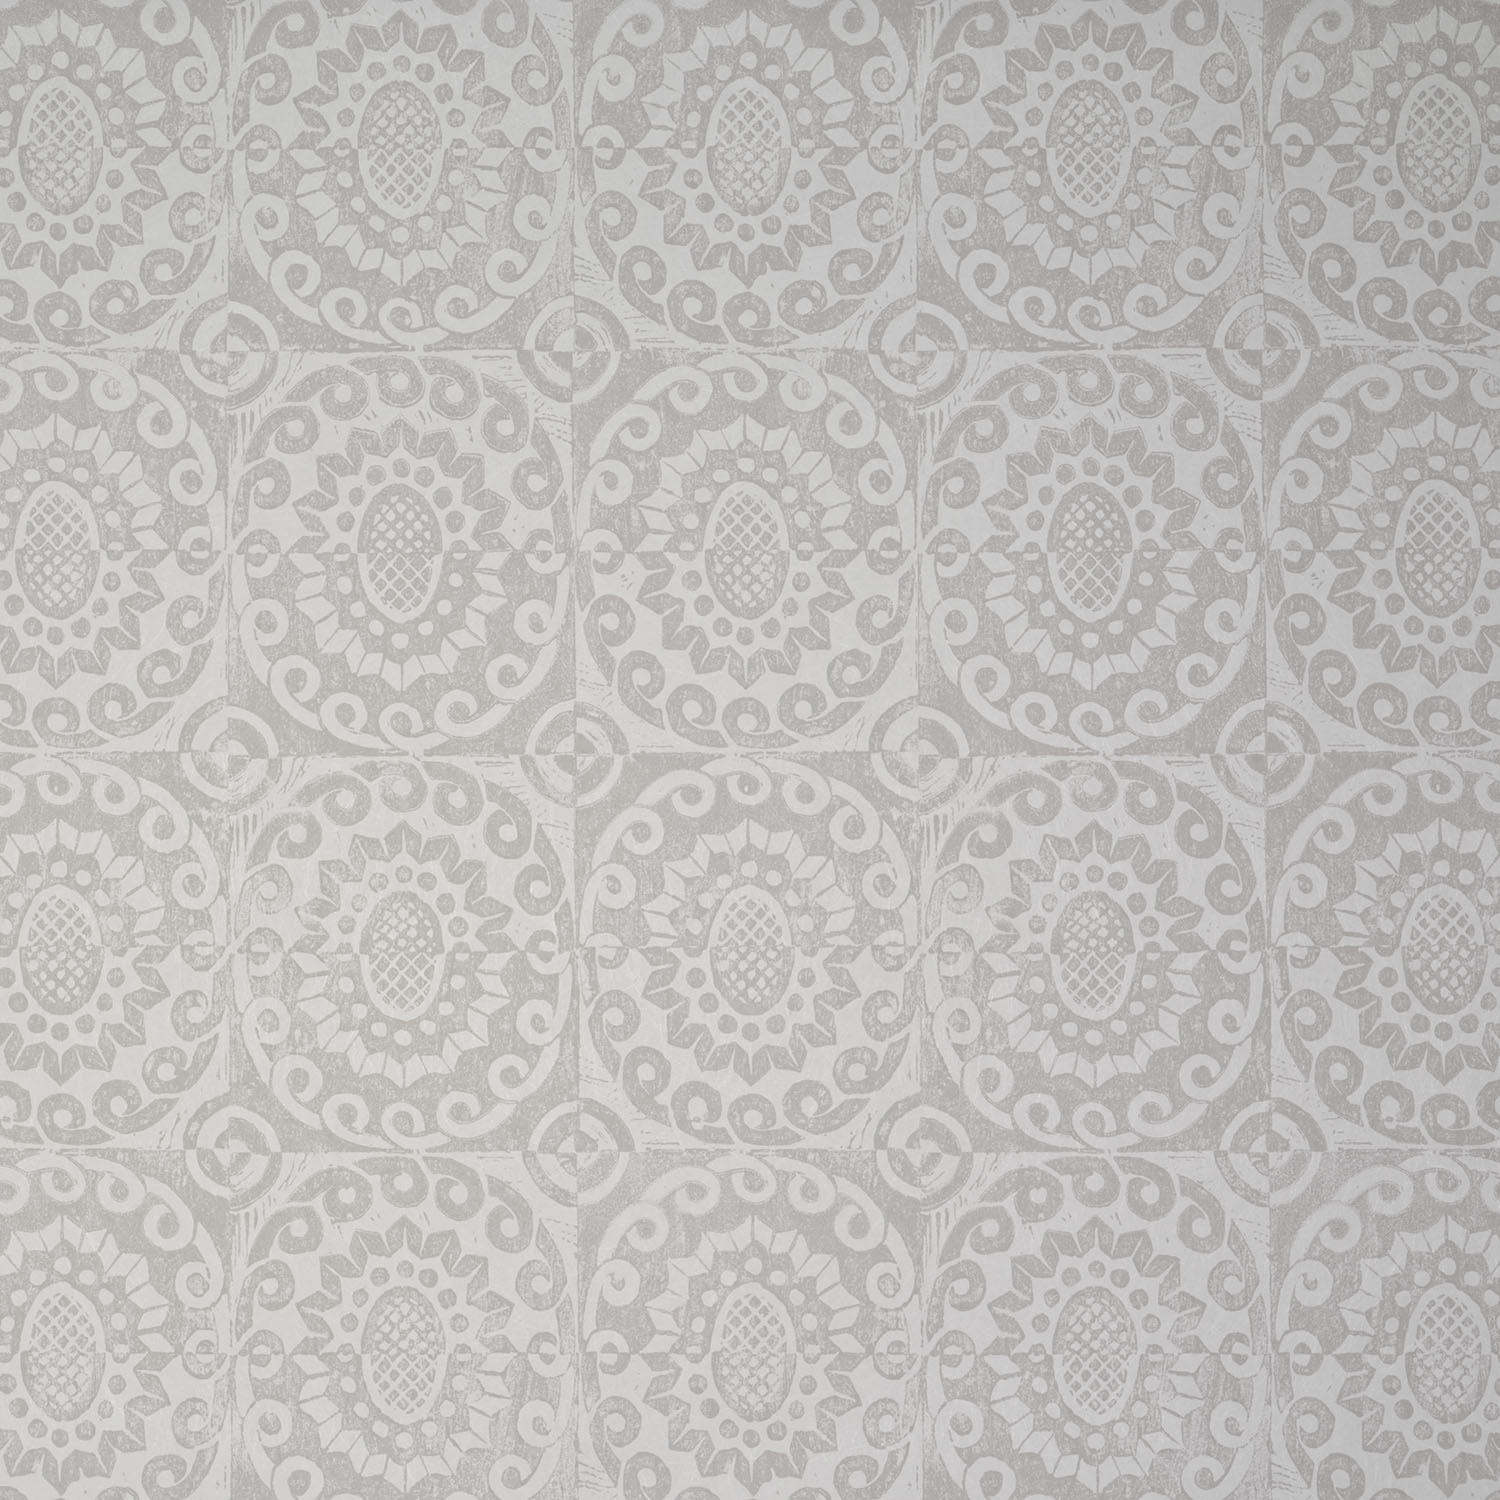 <p><strong>PINEAPPLE</strong>taupe 300-01<a href=/the-peggy-angus-collection/pineapple-taupe-300-01>More →</a></p>